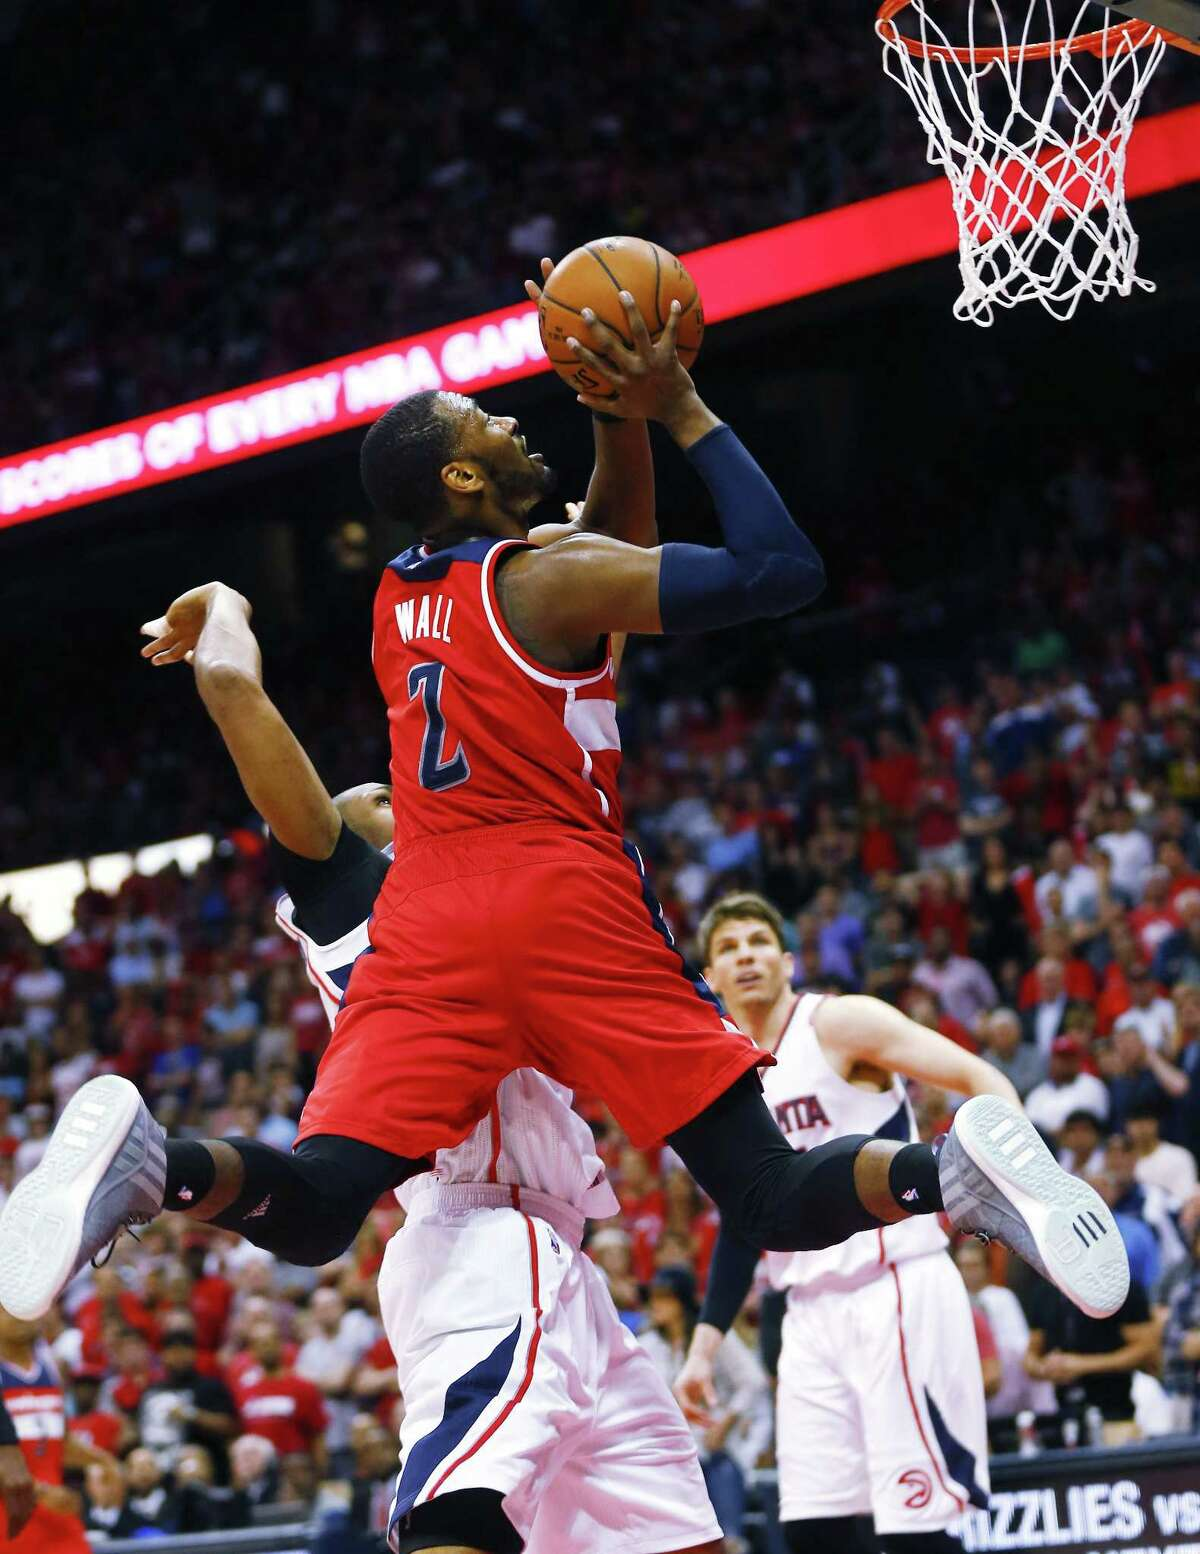 Washington Wizards guard John Wall has multiple fractures in his wrist and hand.